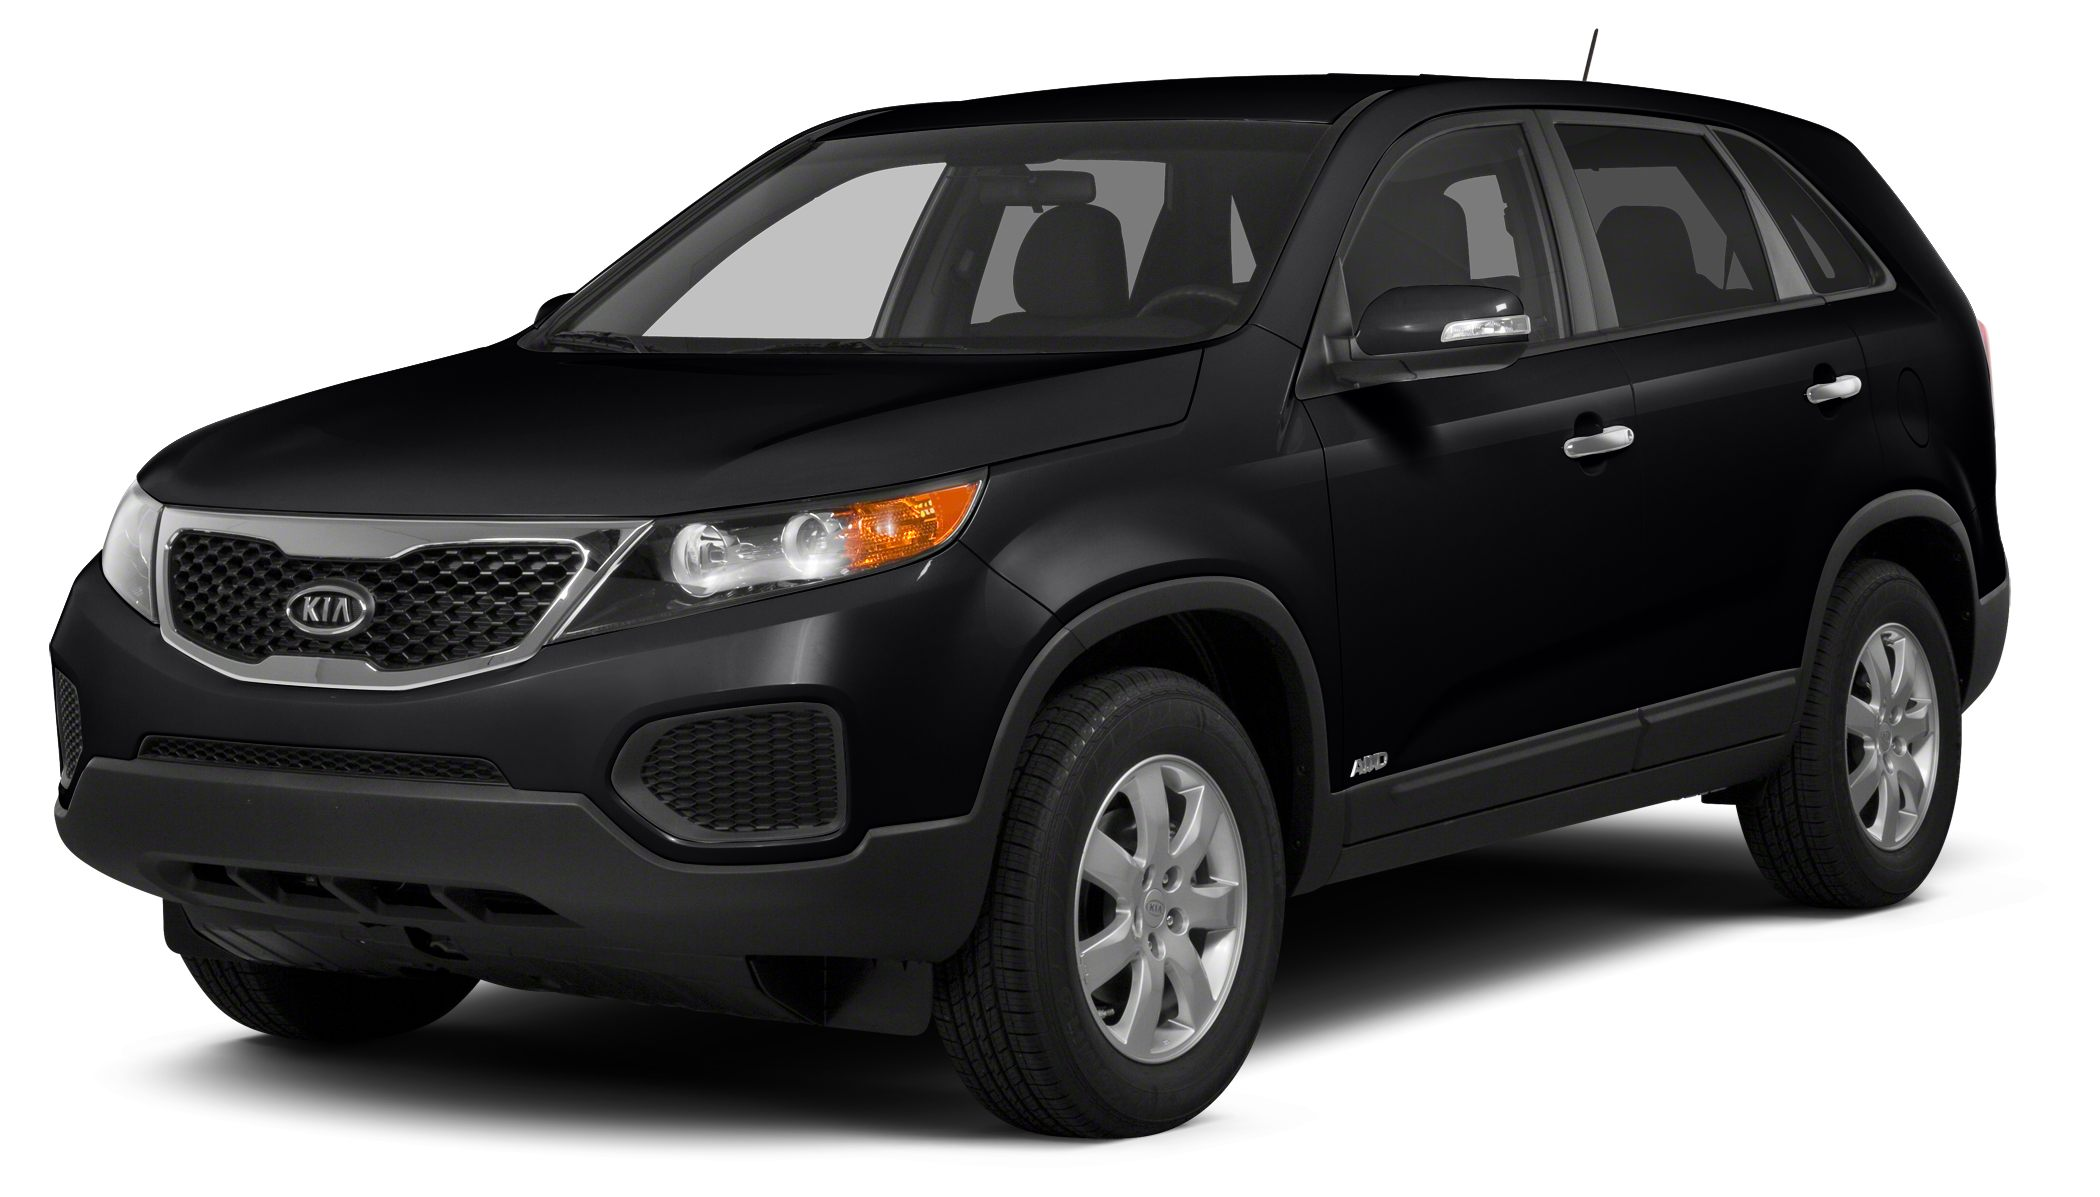 2011 Kia Sorento EX FLOOD ADVANTAGE PROGRAM And FULLY SERVICED AND RECONDITIONED Power To Surpr